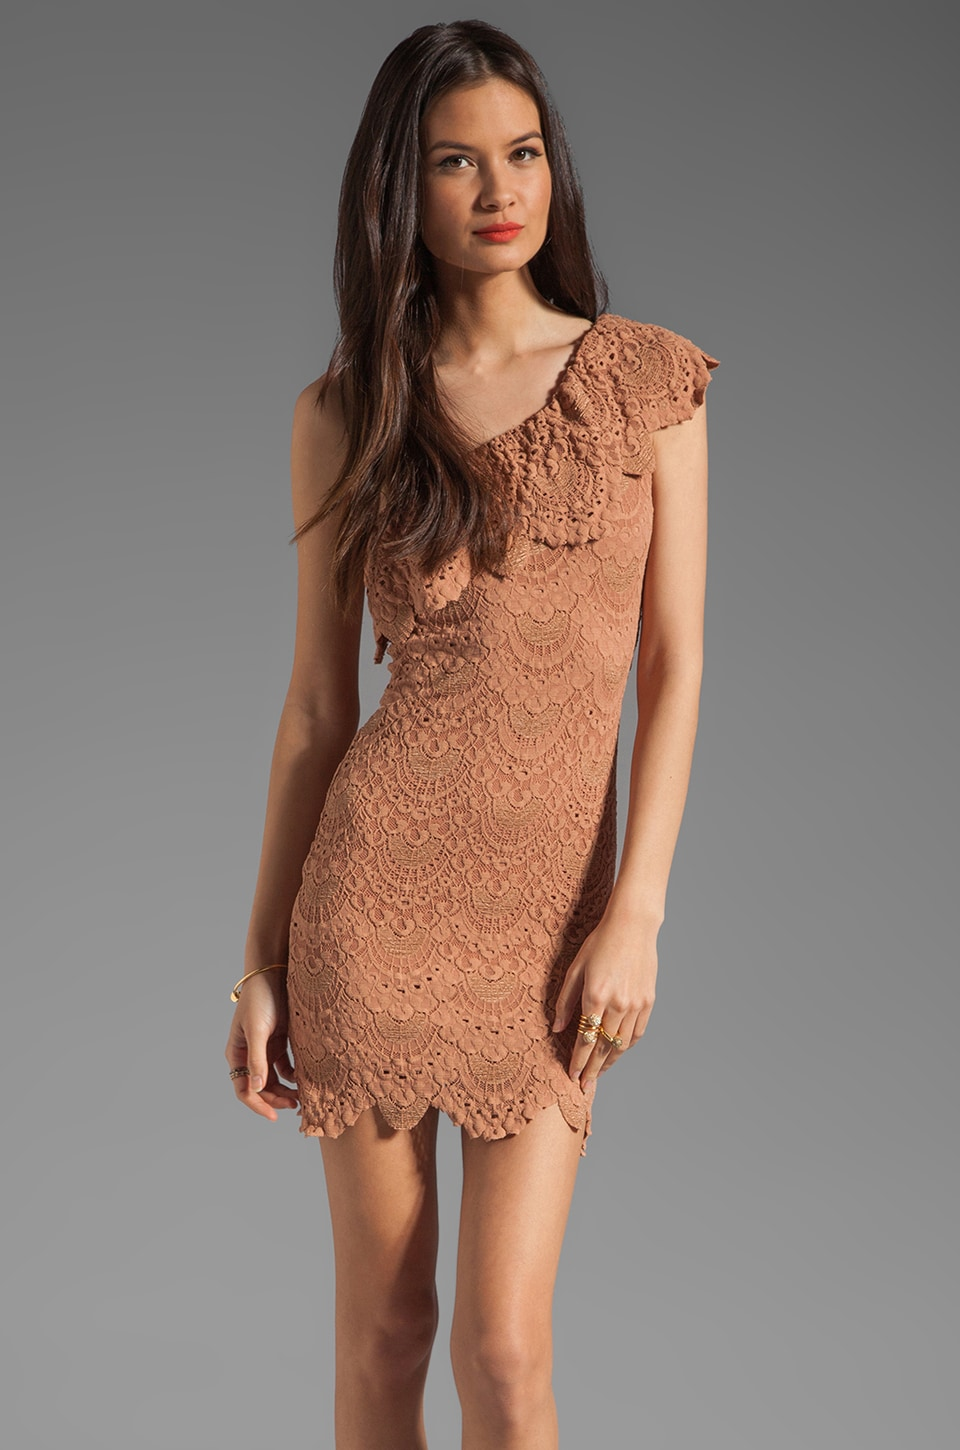 Nightcap One Shoulder Lace Dress in Blush